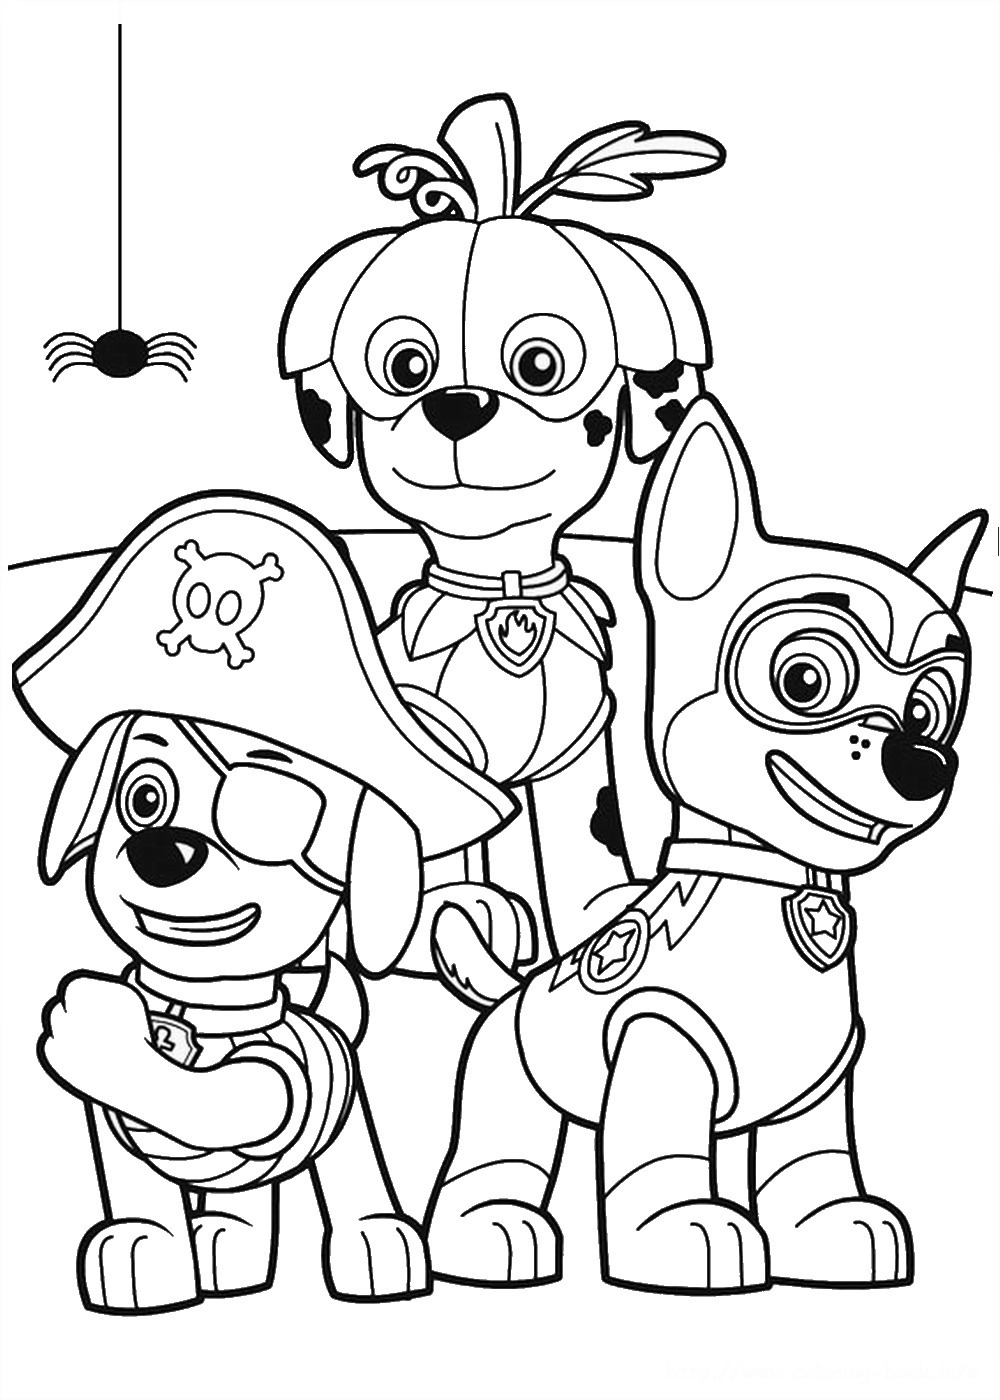 coloring pages nick jr - photo#5